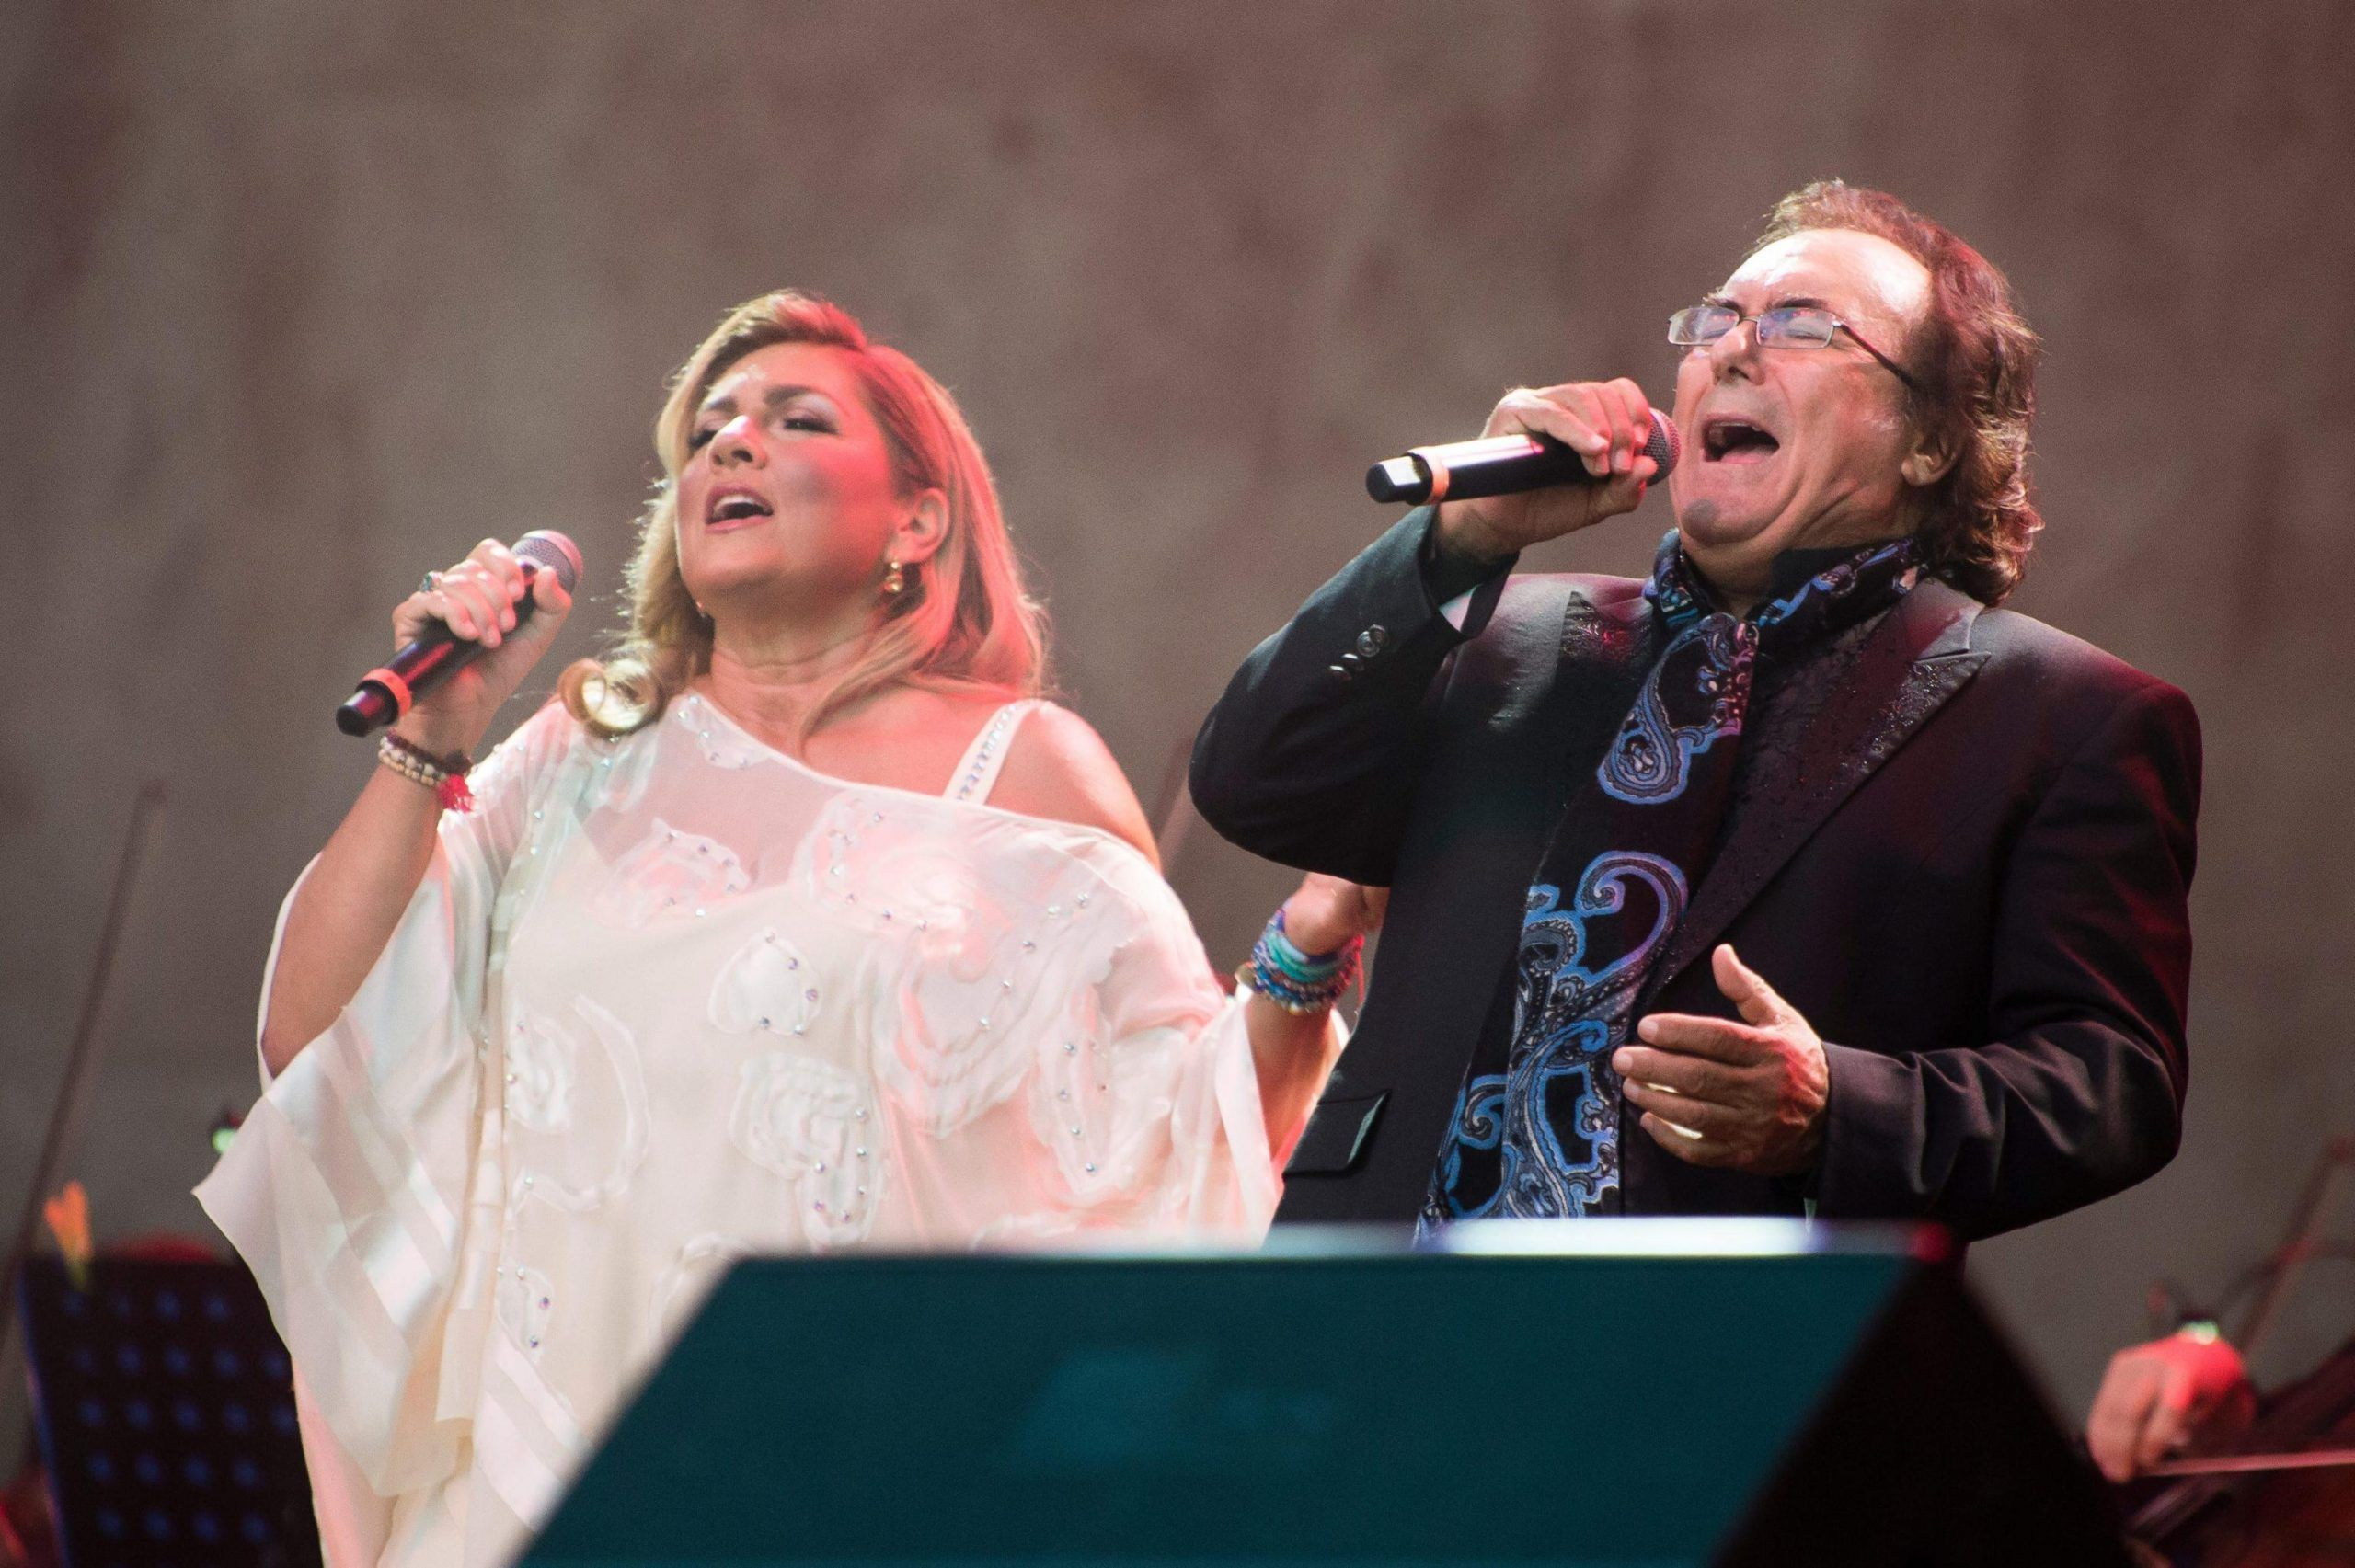 Germany Come back of Albano and Romina Power